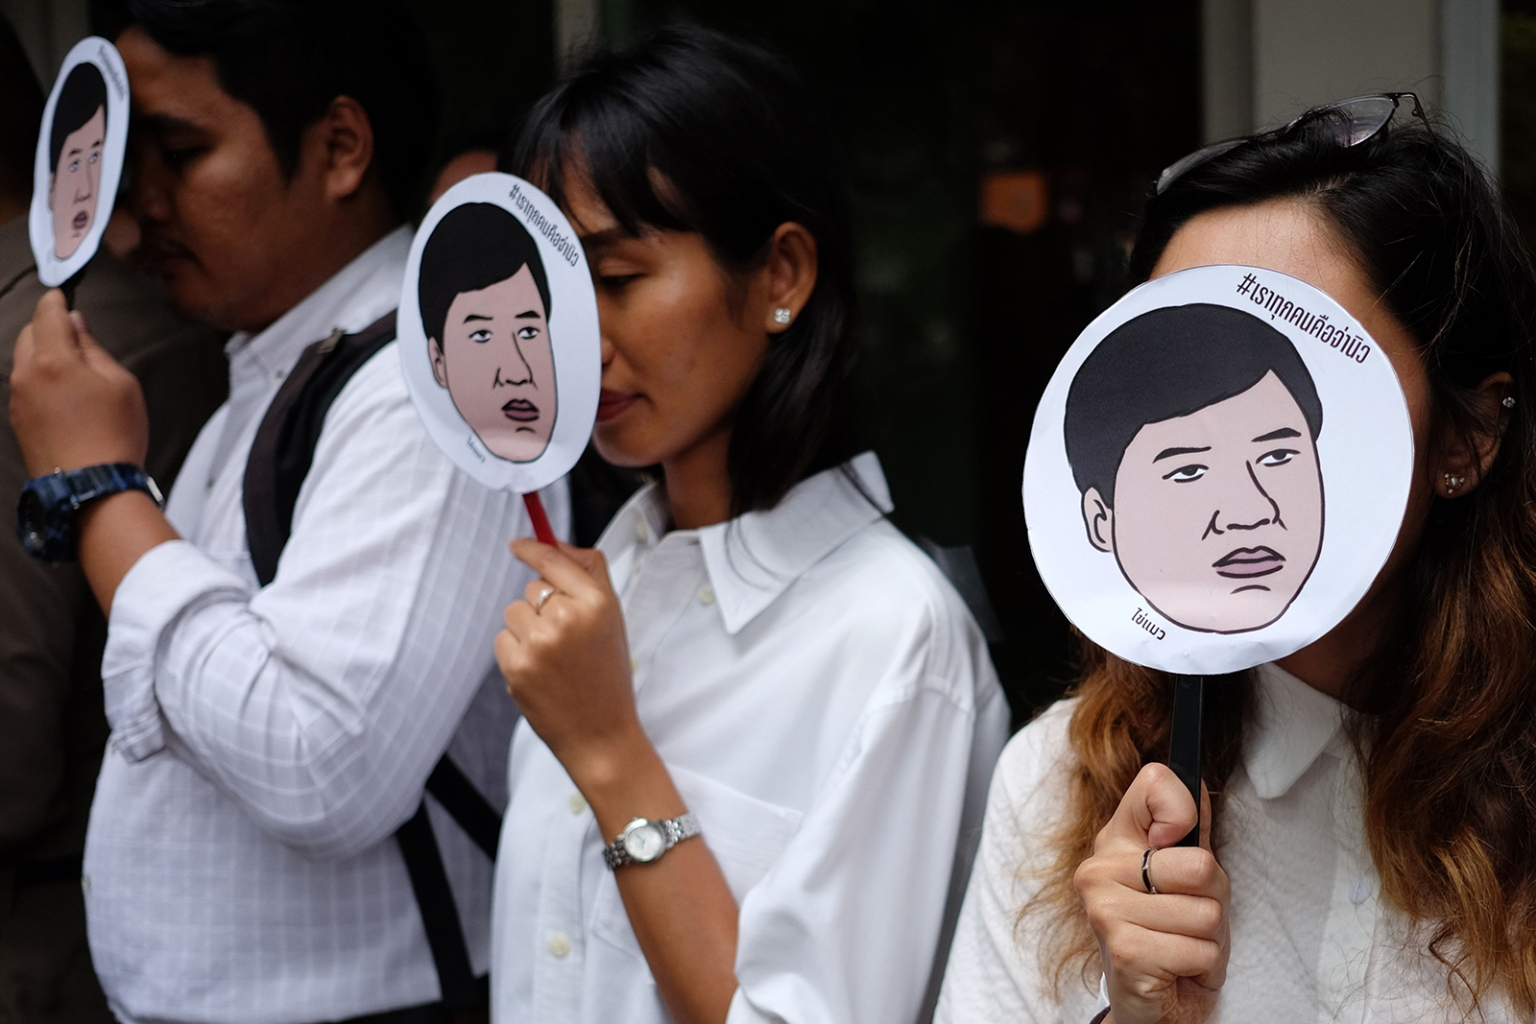 """Members of Amnesty International hold up images of Sirawith """"Ja New"""" Seritiwat, a Thai pro-democracy campaigner who was attacked by unknown assailants, during a protest in Bangkok on July 3. CANDIDA NG/AFP/Getty Images"""